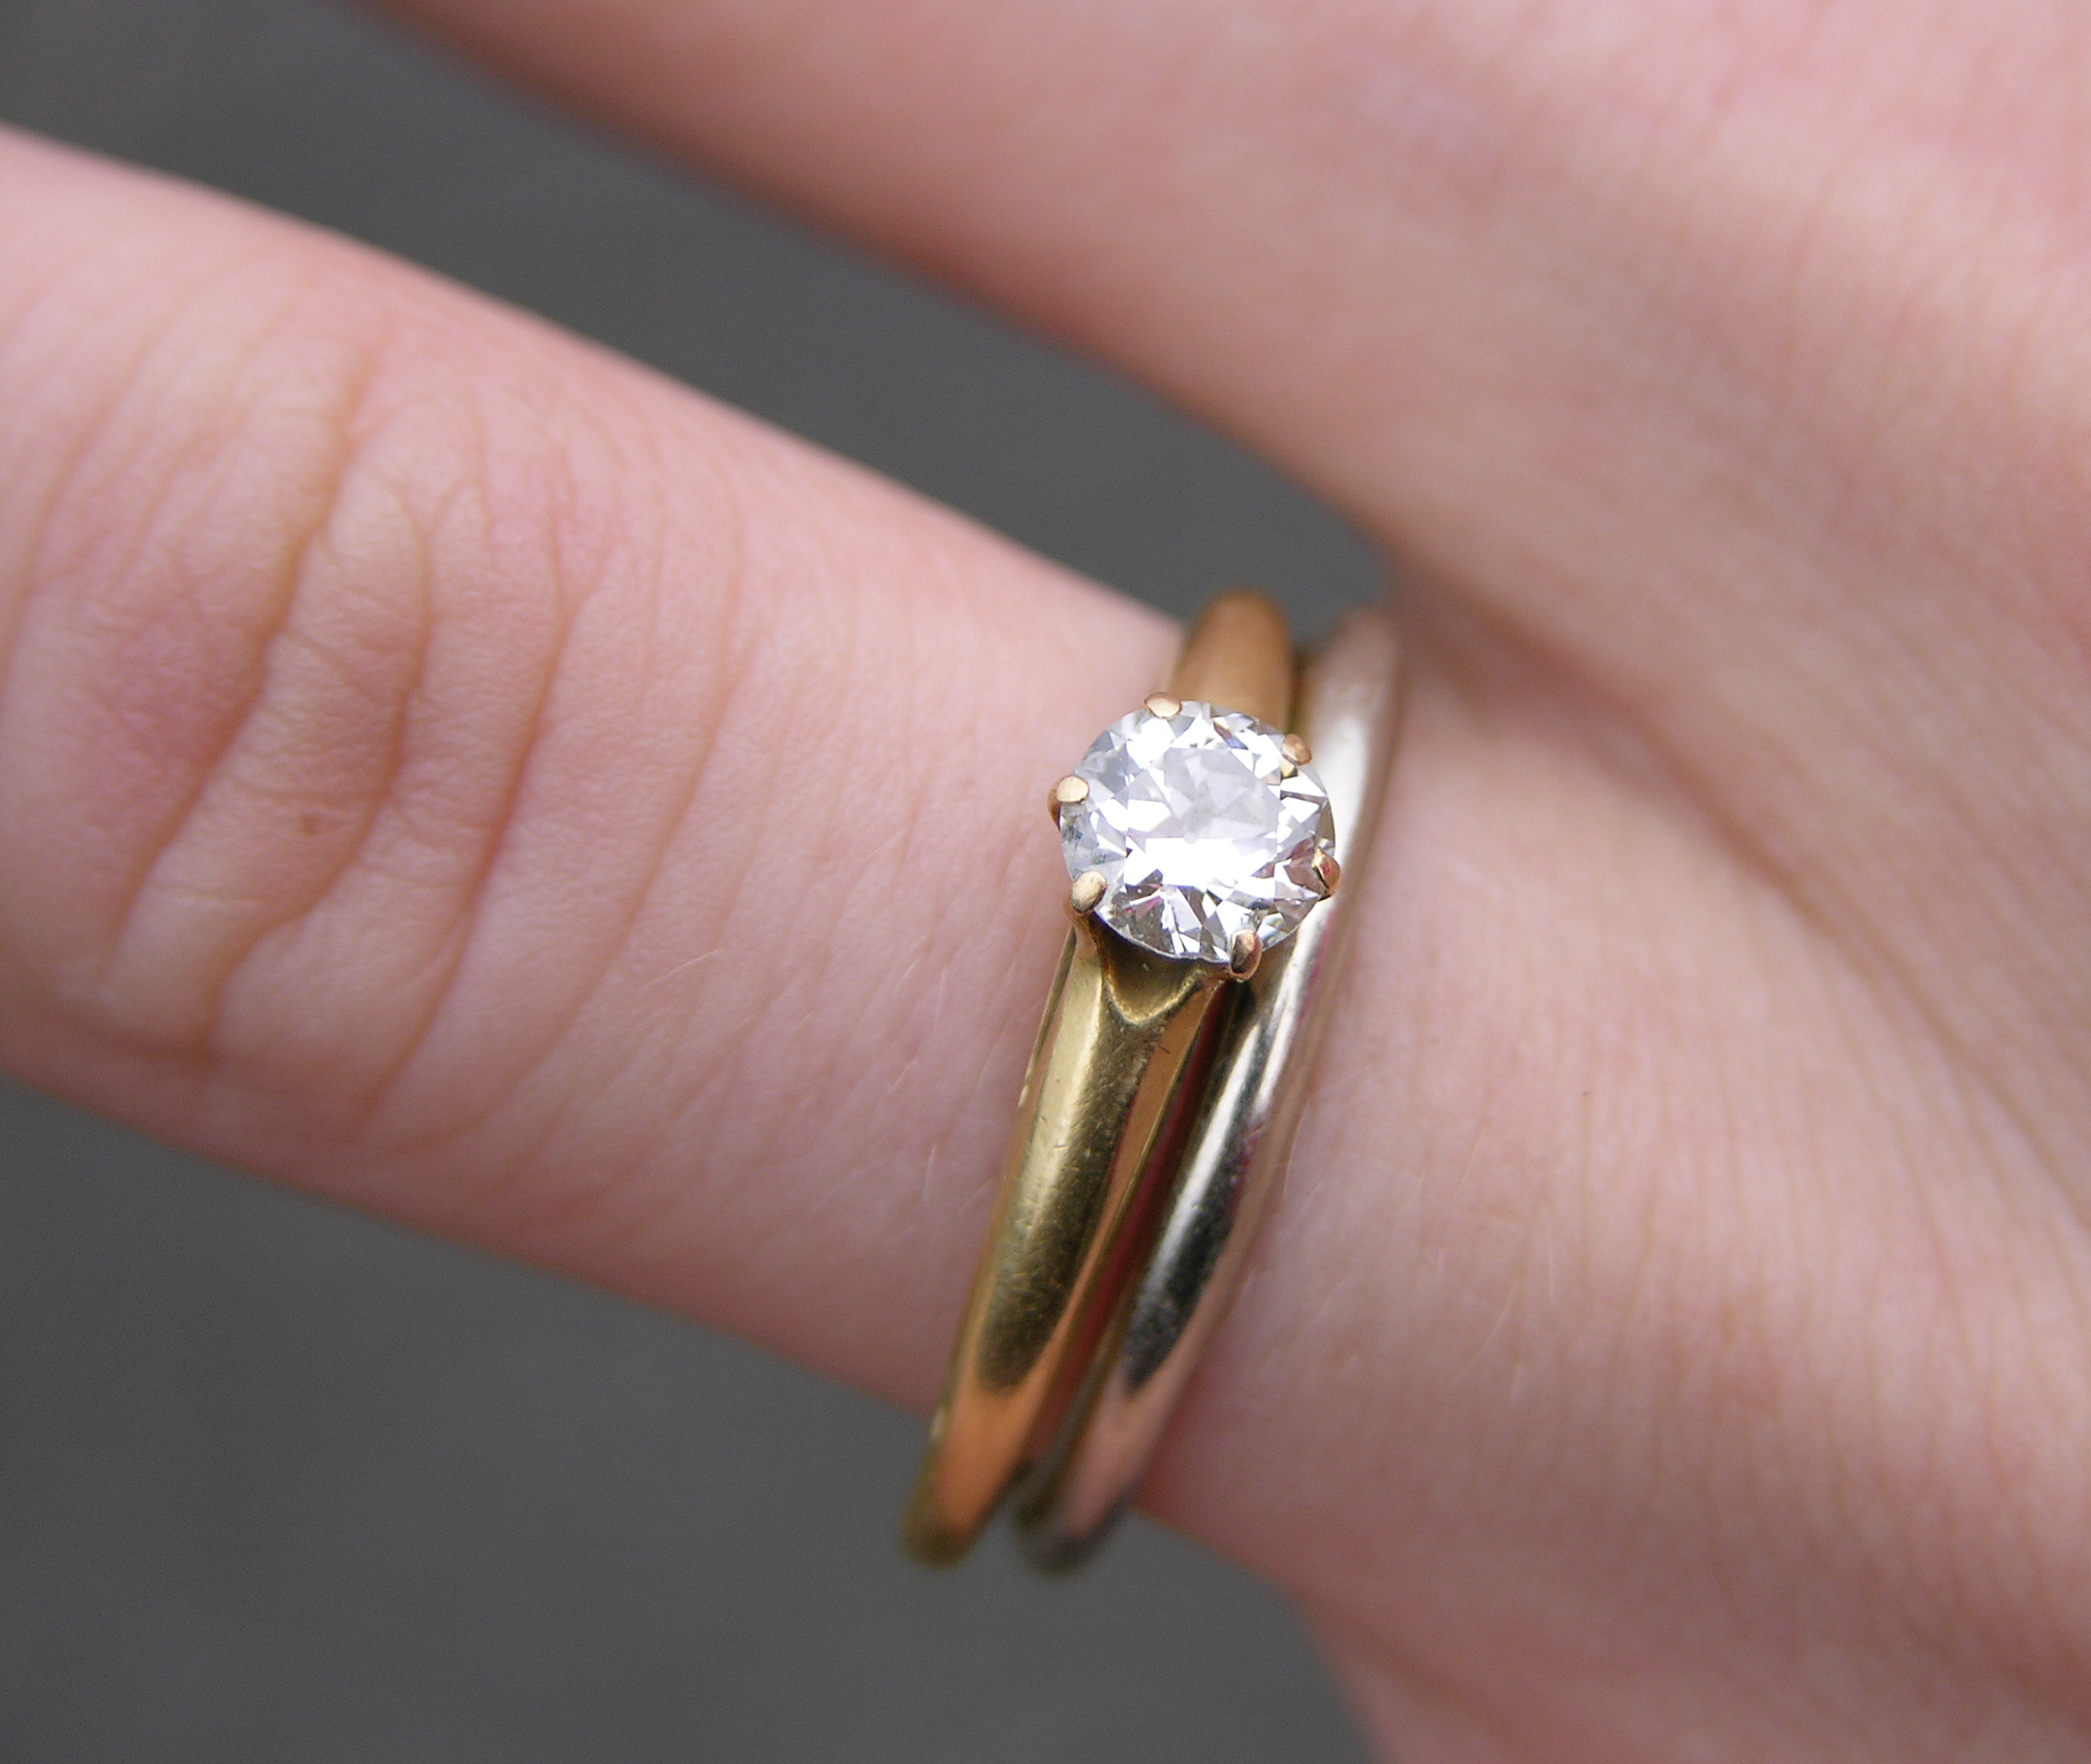 season to awesome engagement wear rings tips planning how band this image wedding new jewellery